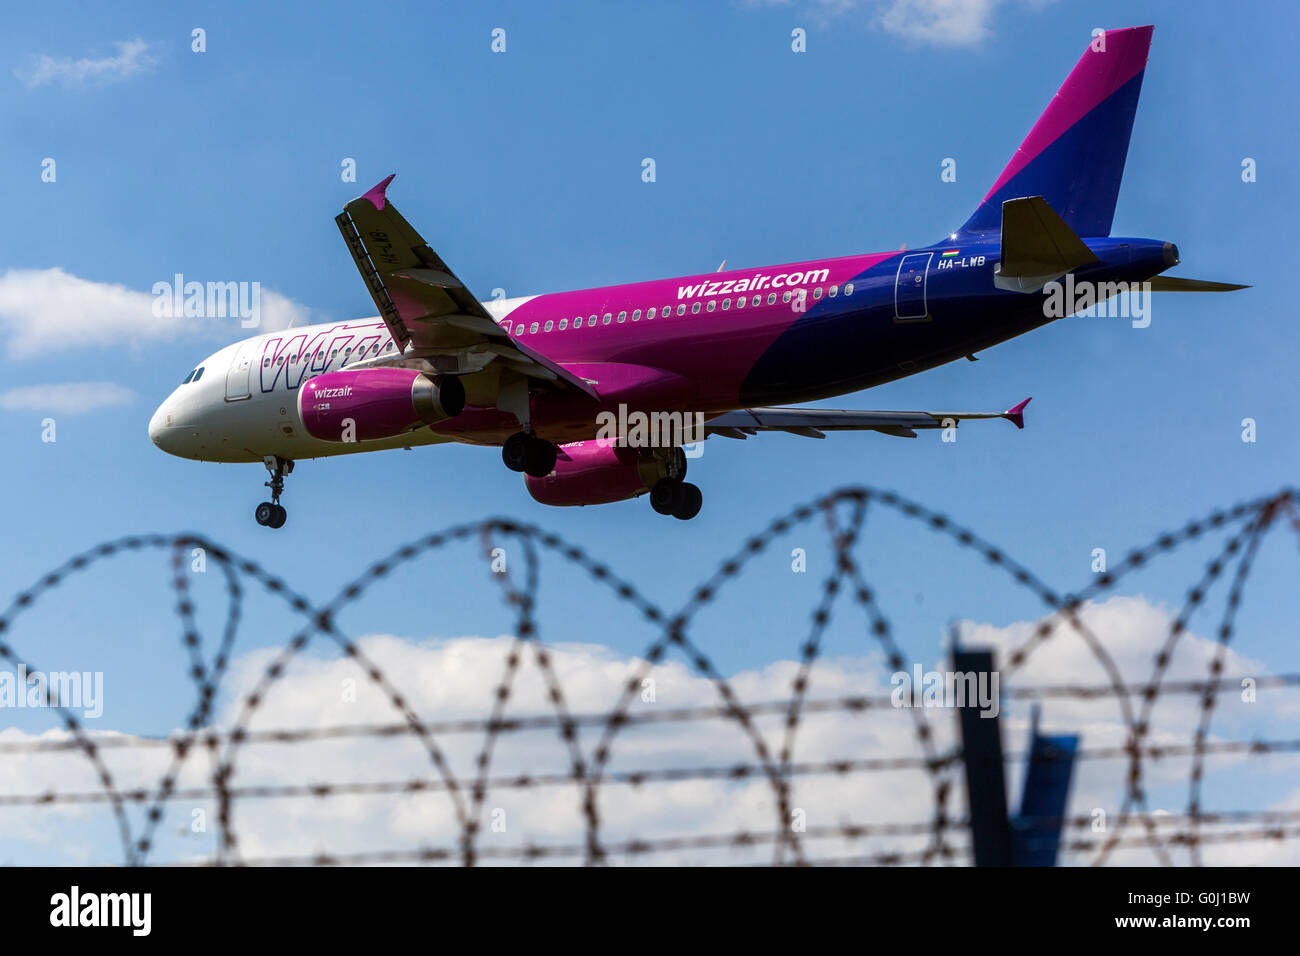 Wizz Air, Airbus A320 approaches for landing, Prague, Czech Republic - Stock Image